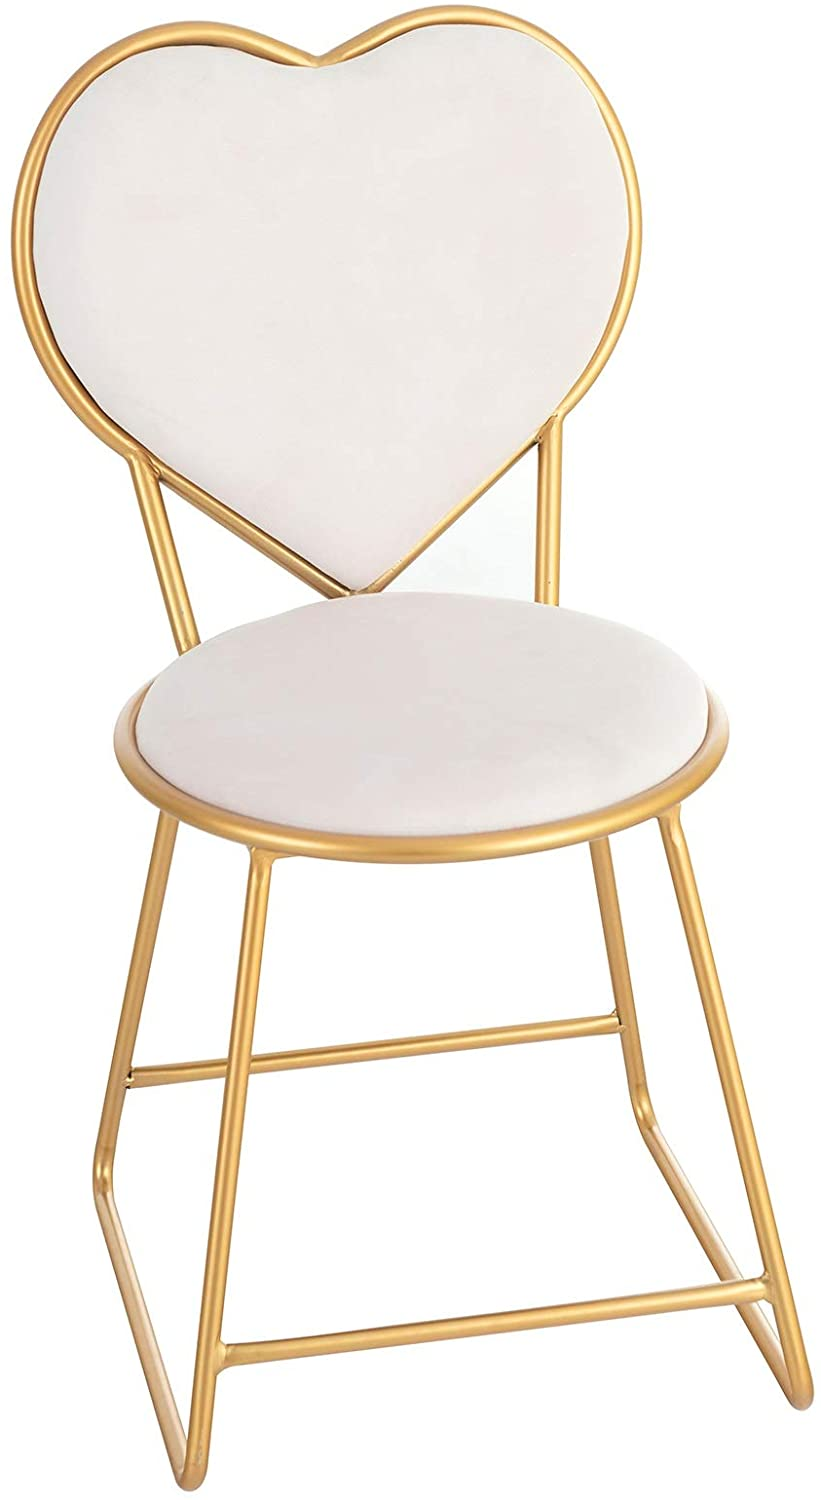 Mecor Vanity Stool With Cushioned Back Makeup Dressing Bench Gold Metal Legs Microfiber Upholstery Padded Vanity Seat White Walmart Com Walmart Com